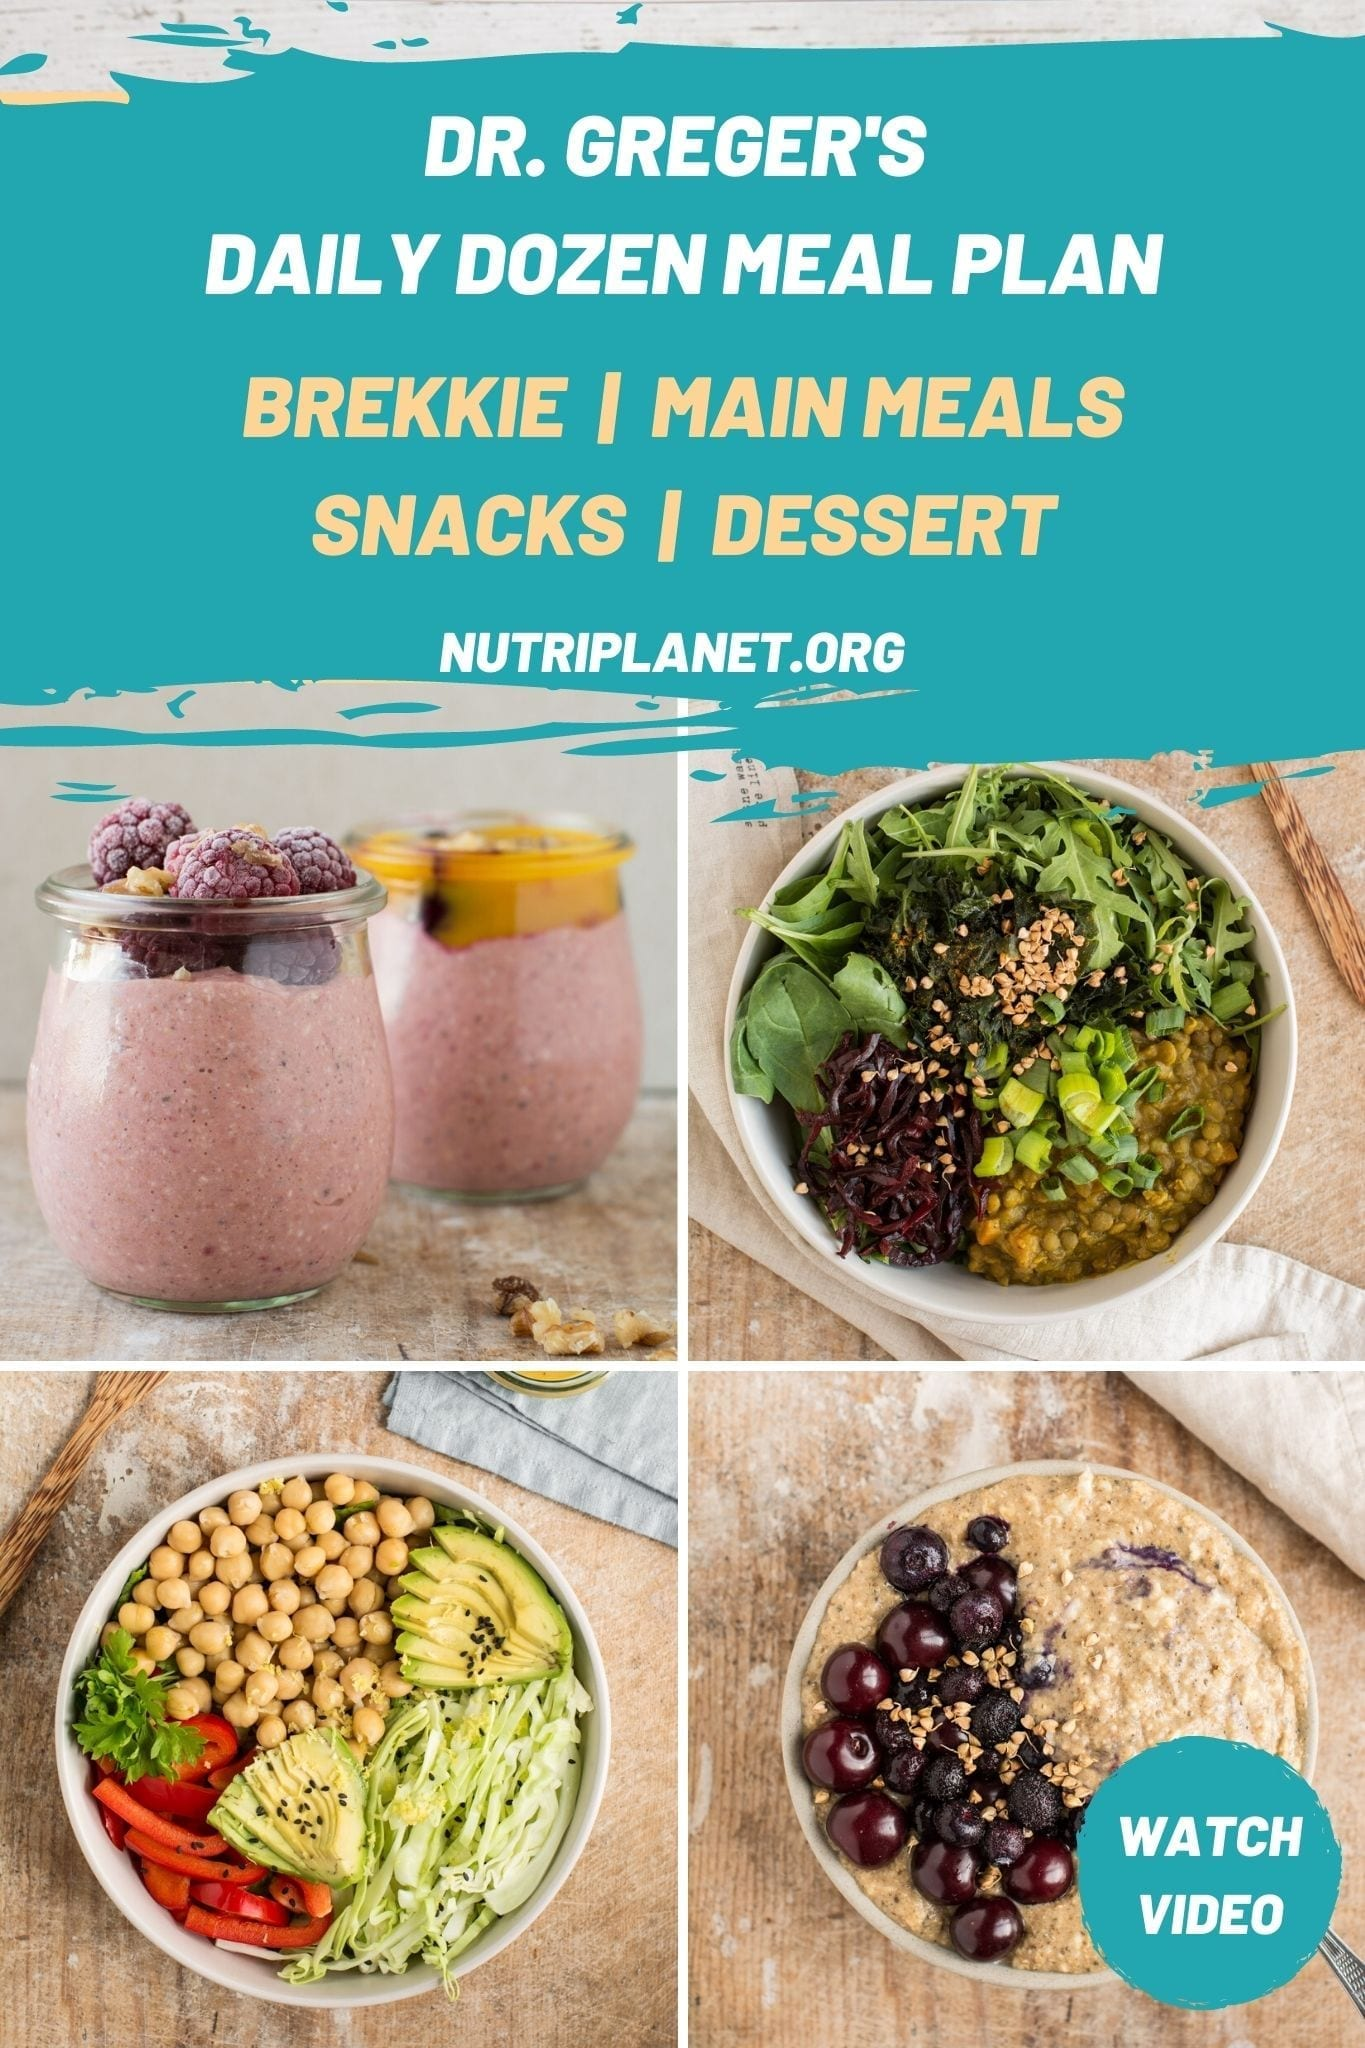 The Daily Dozen Meal Plan [Gluten-Free]